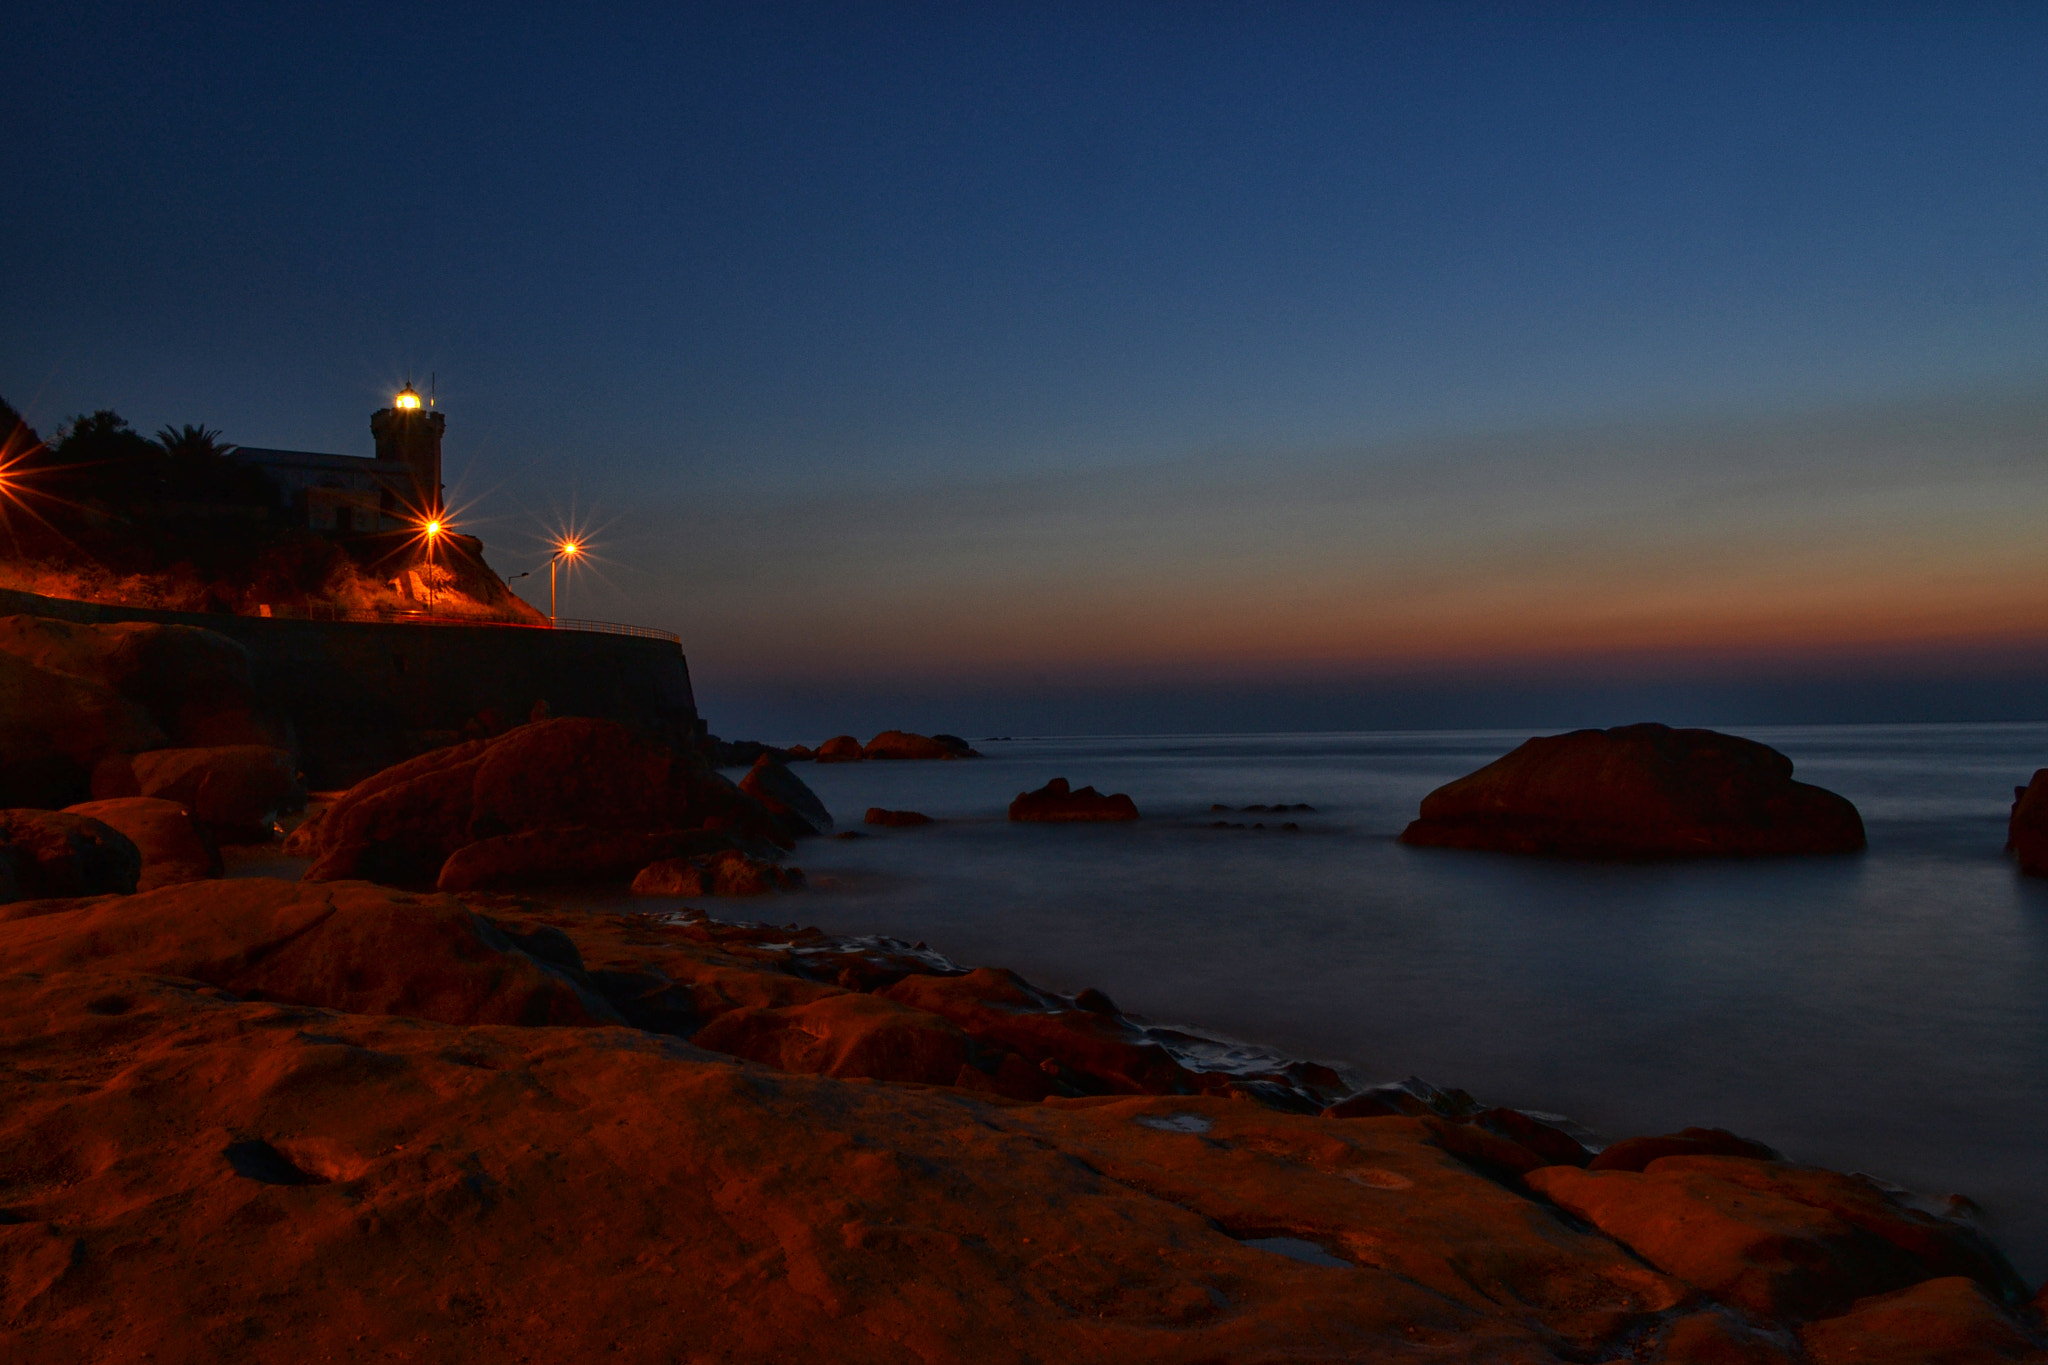 Photograph Lighthouse sunset by Salvo Mangiaglia on 500px